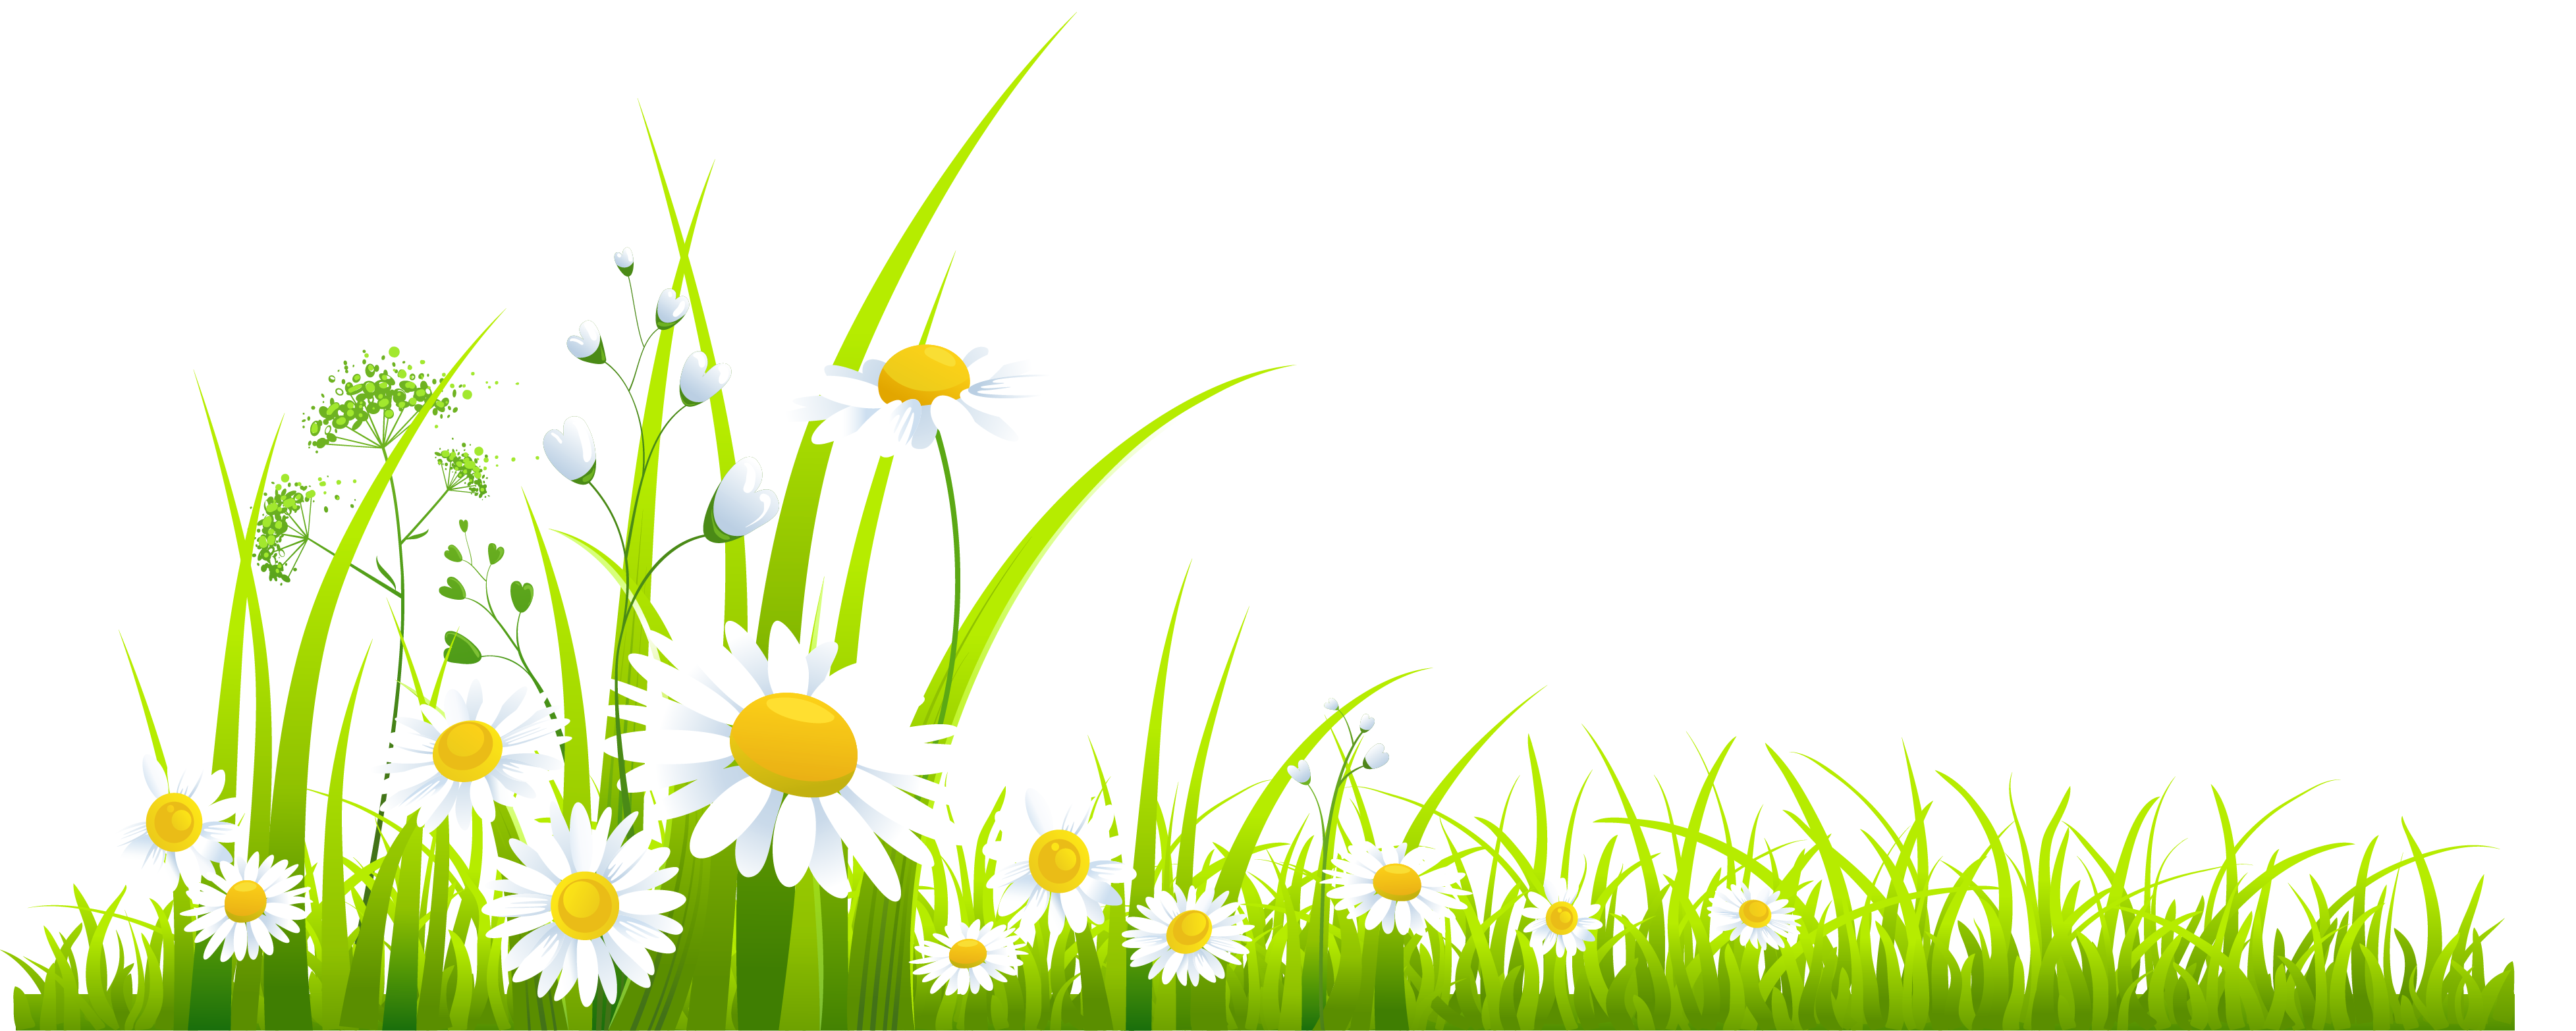 Clipart grass rock. Spring on free images